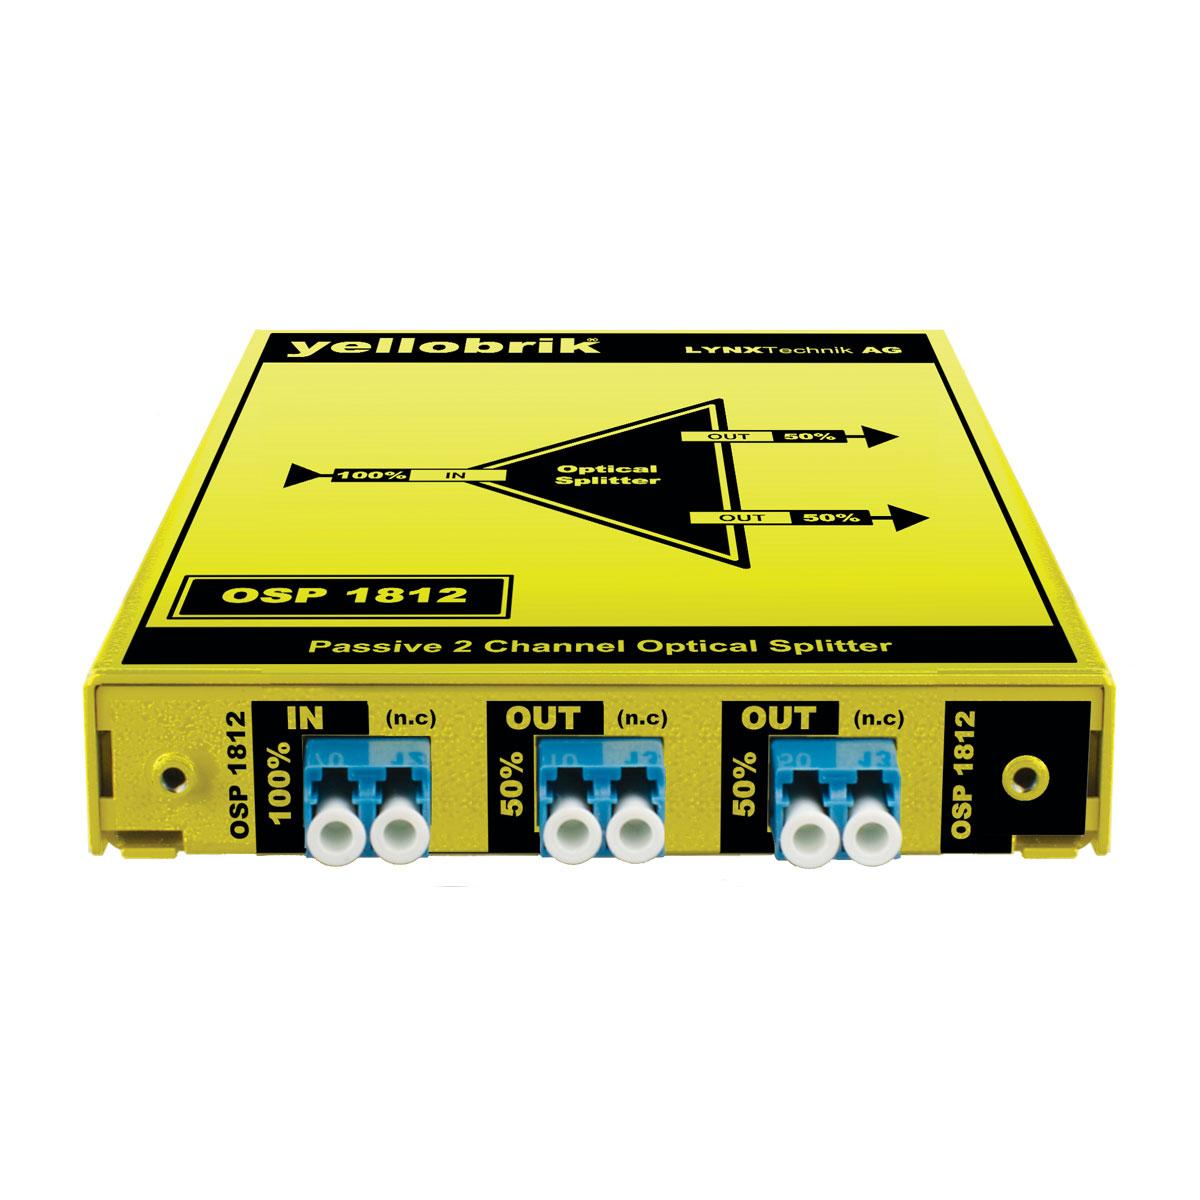 OSP 1812 yellobrik Optical Splitter